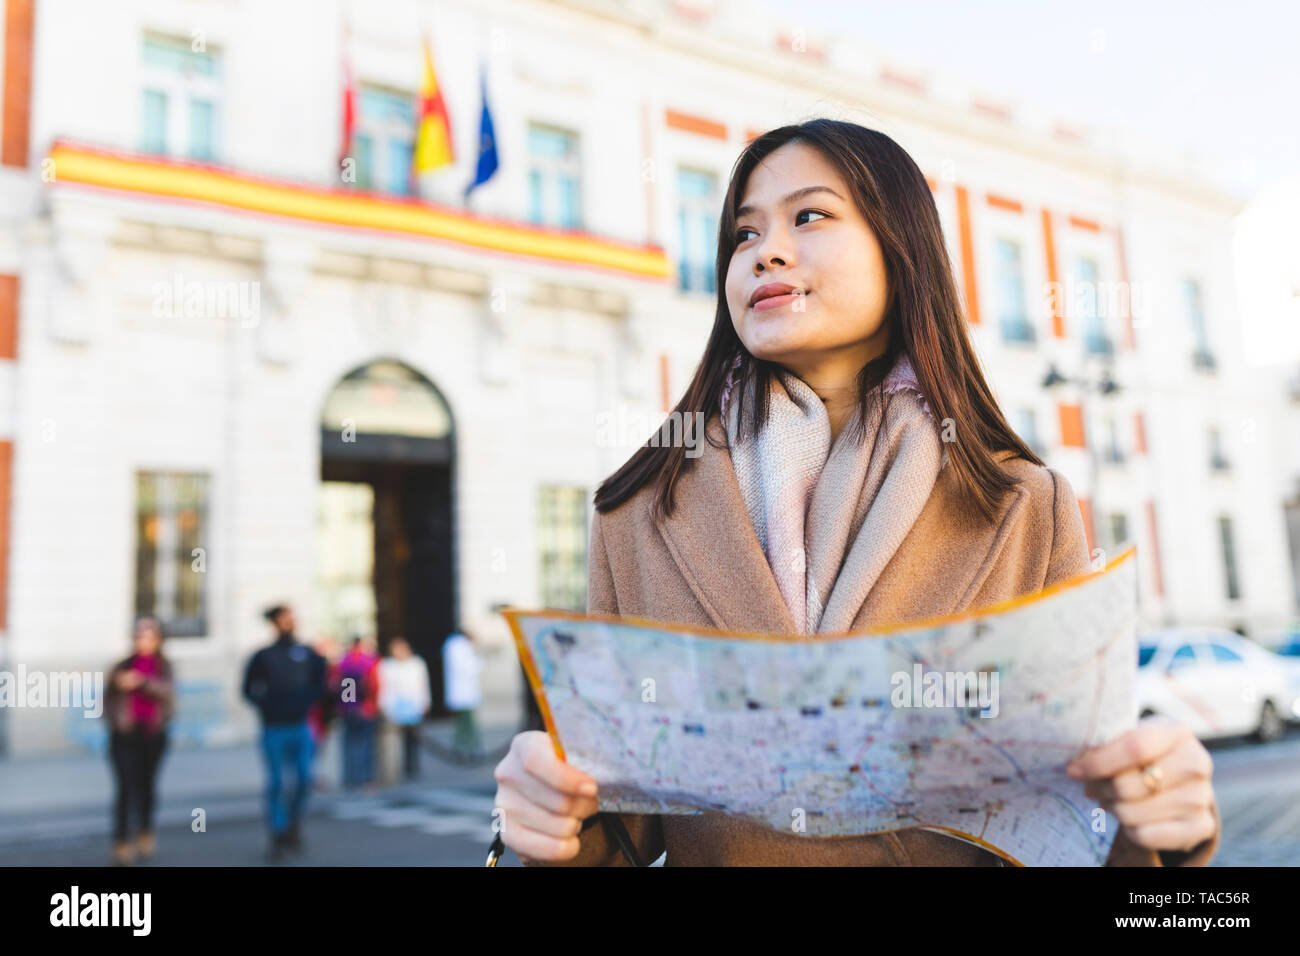 Spain, Madrid, young woman with map exploring the city - Stock Image